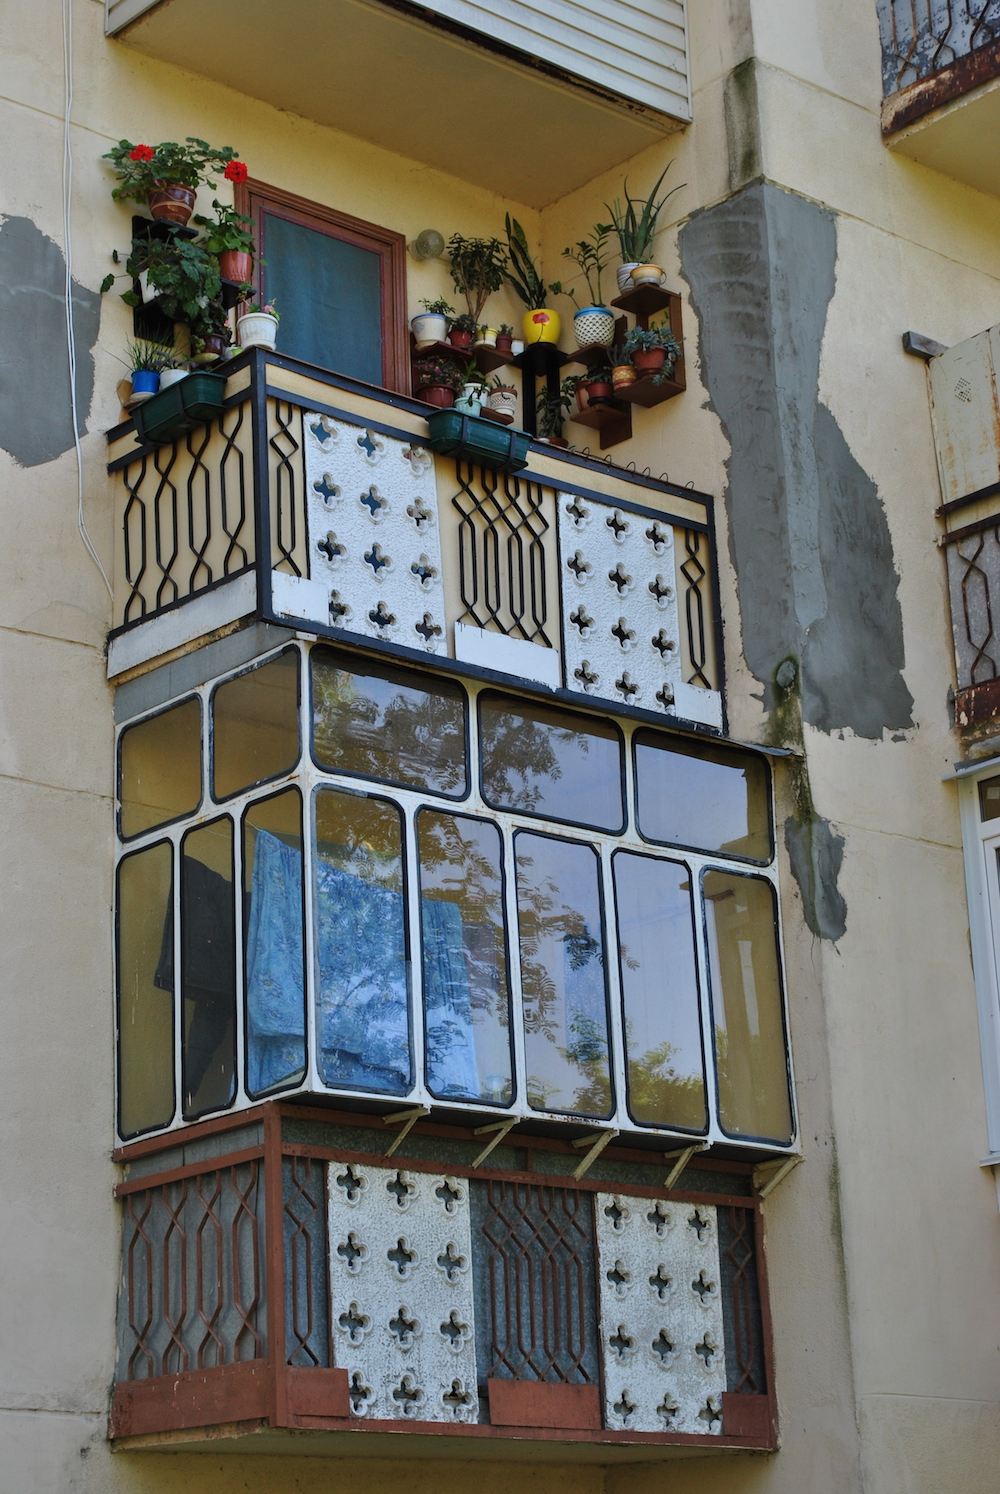 A balcony in the Tbilisi quarter. Image: Aleksandra Burshteyn